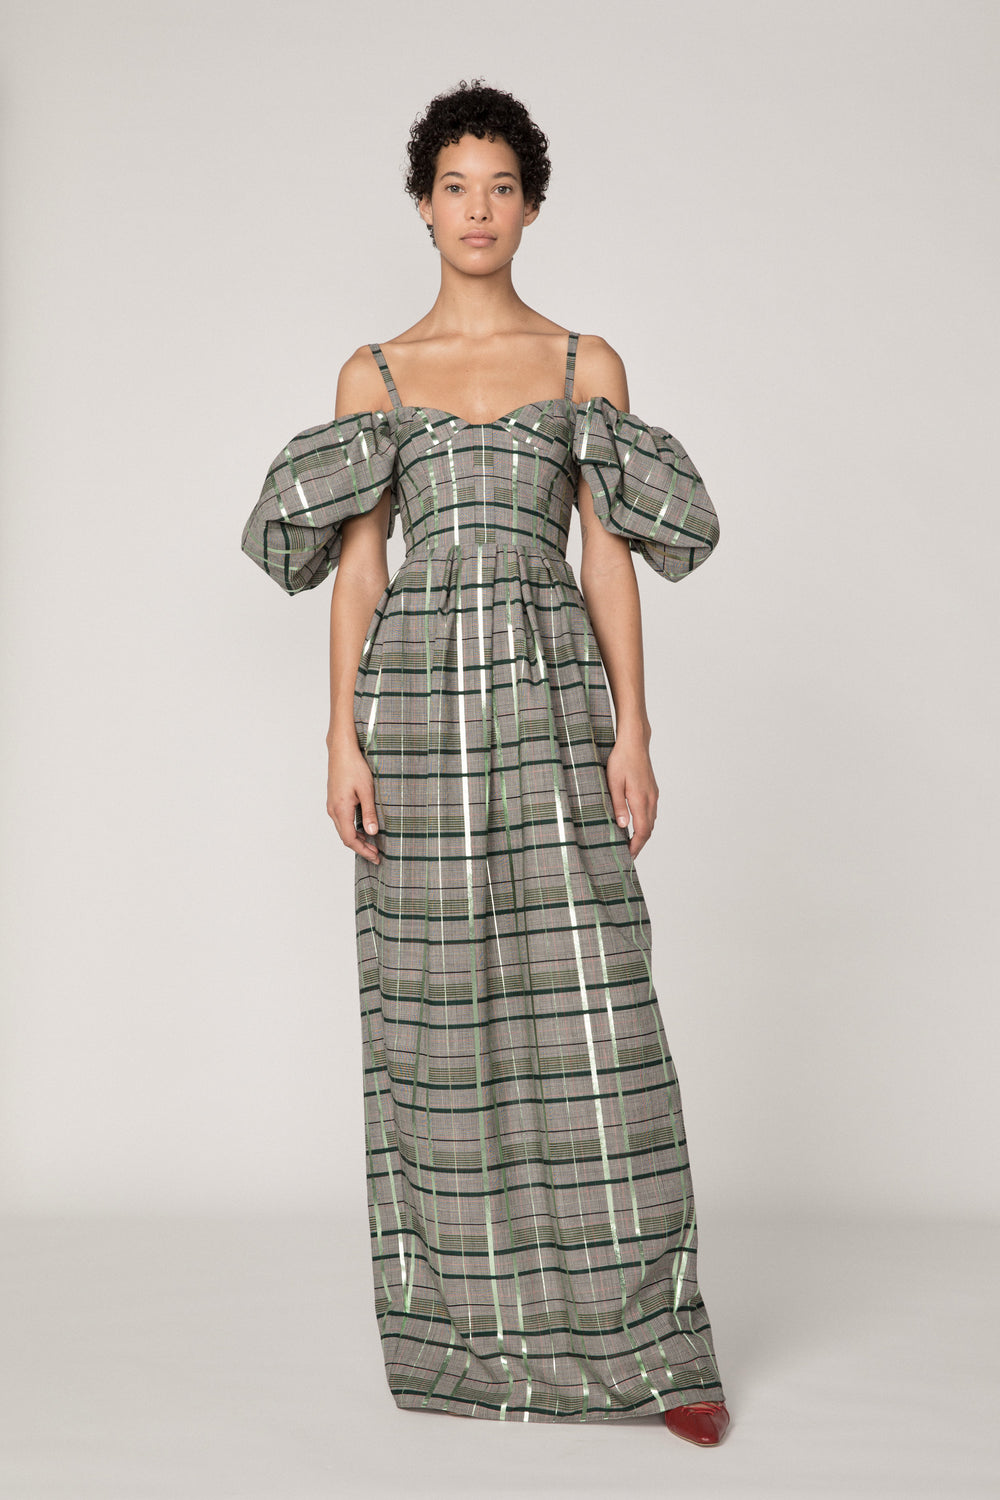 Rosie Assoulin Fall 2019 Off The Shoulder Puff Sleeve Gown. Full-length wool gown with puff sleeves. Ruched skirt. Split seam on rear hem. Center back zipper. Finished with metallic foil. Green plaid. 98% Wool, 2% Polyester. Sizes 0 - 12.